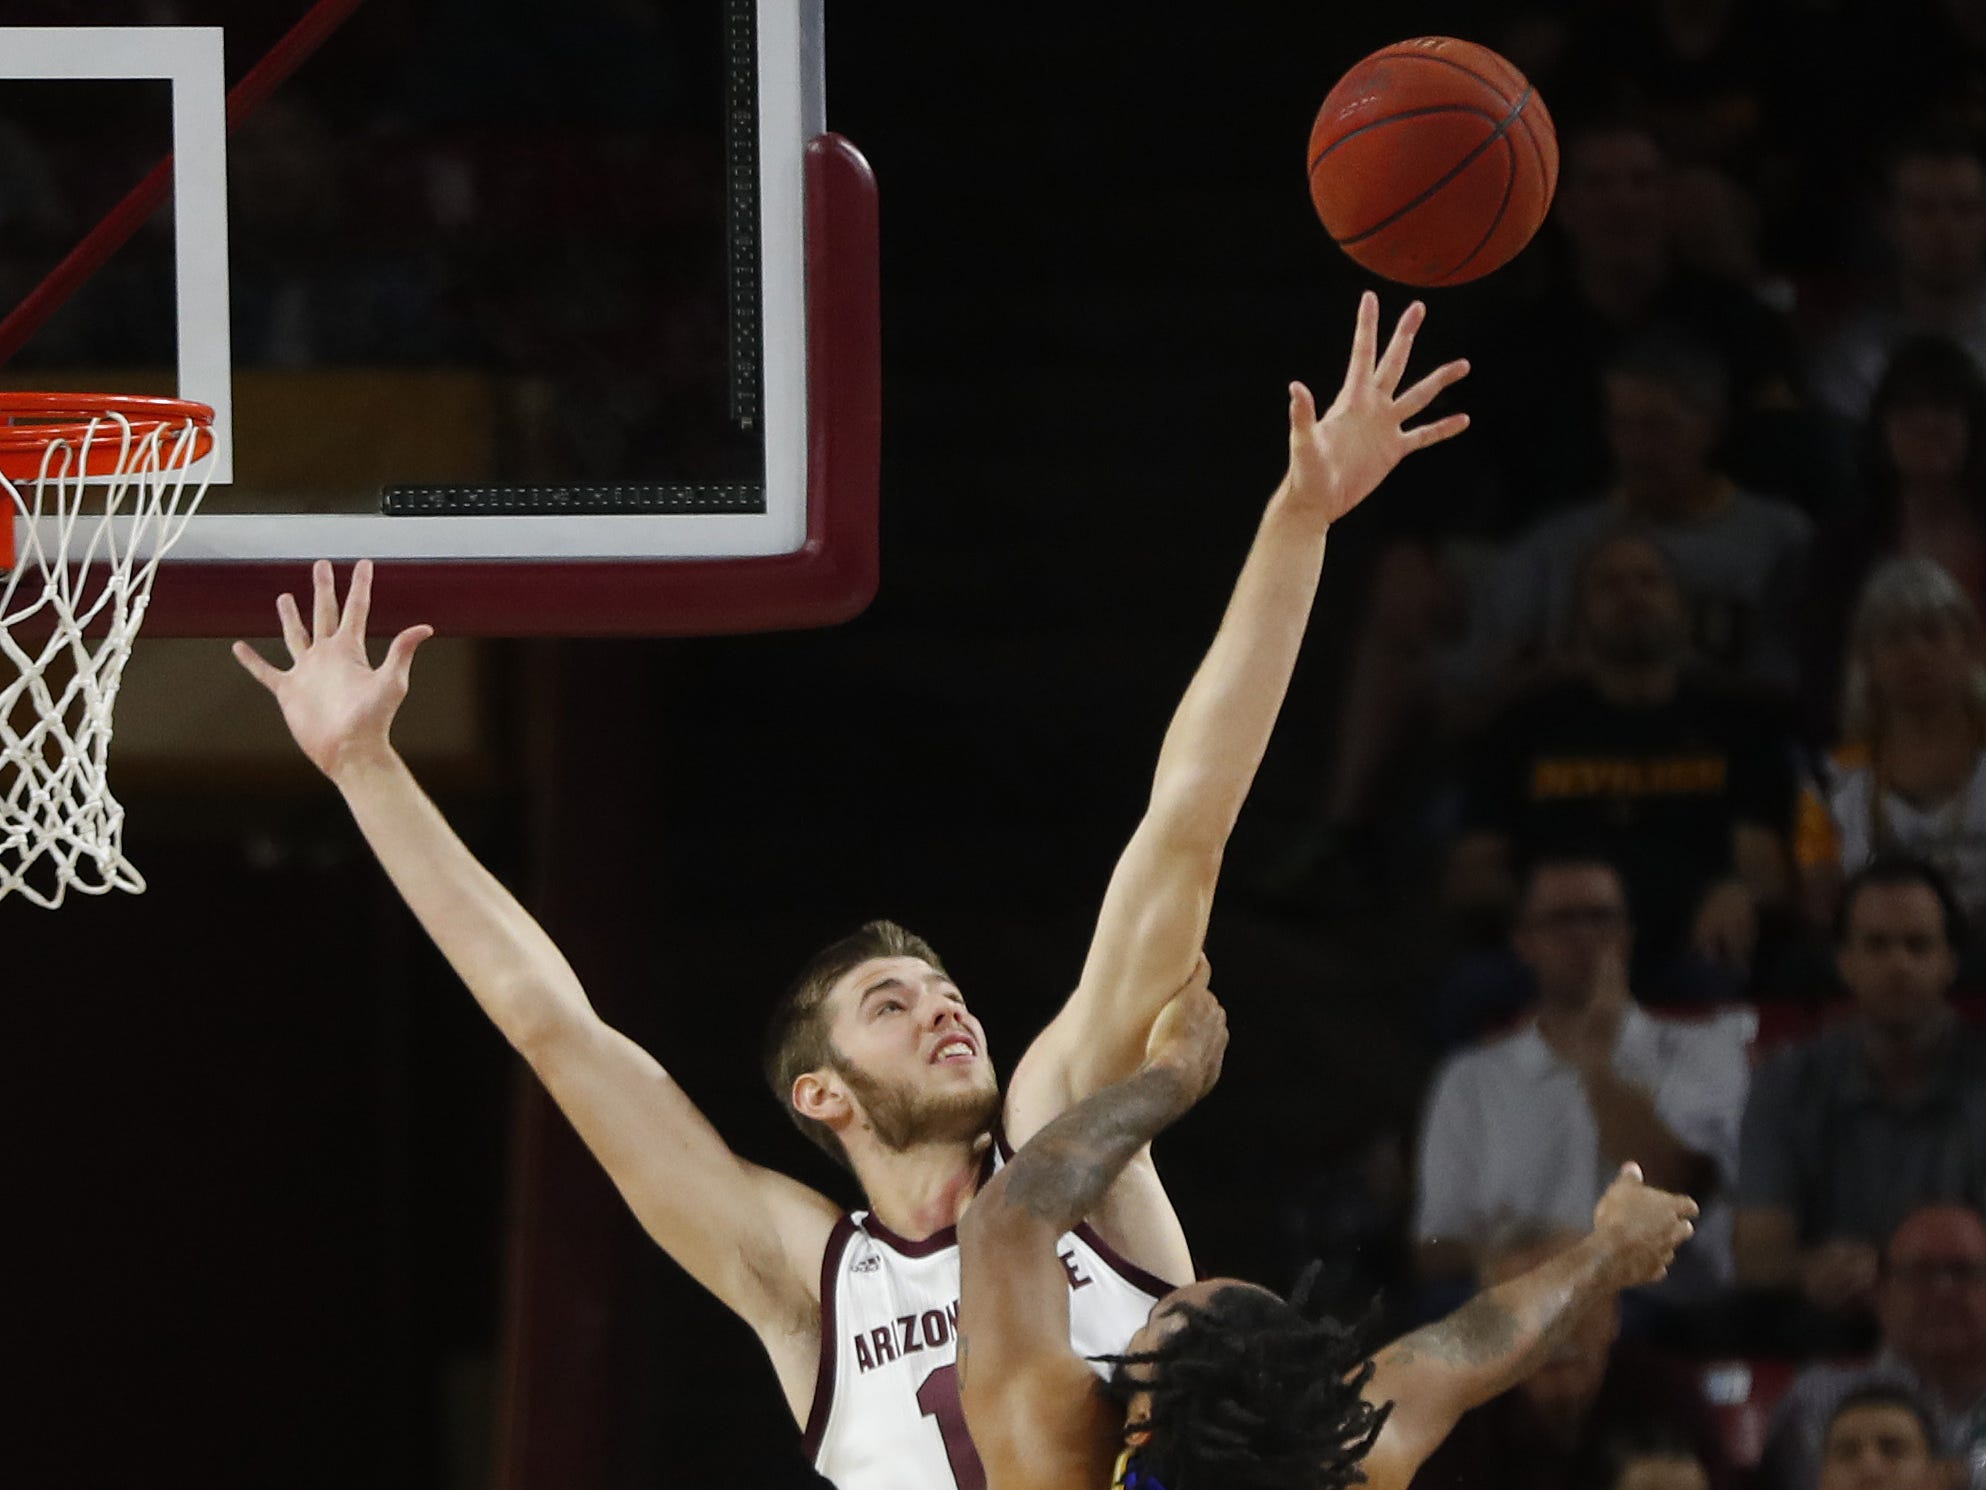 Arizona State's Vitaliy Shibel (10) challenges a shot from McNeese State's Will Robinson (24) during the first half at Wells Fargo Arena in Tempe, Ariz. on November 9, 2018.